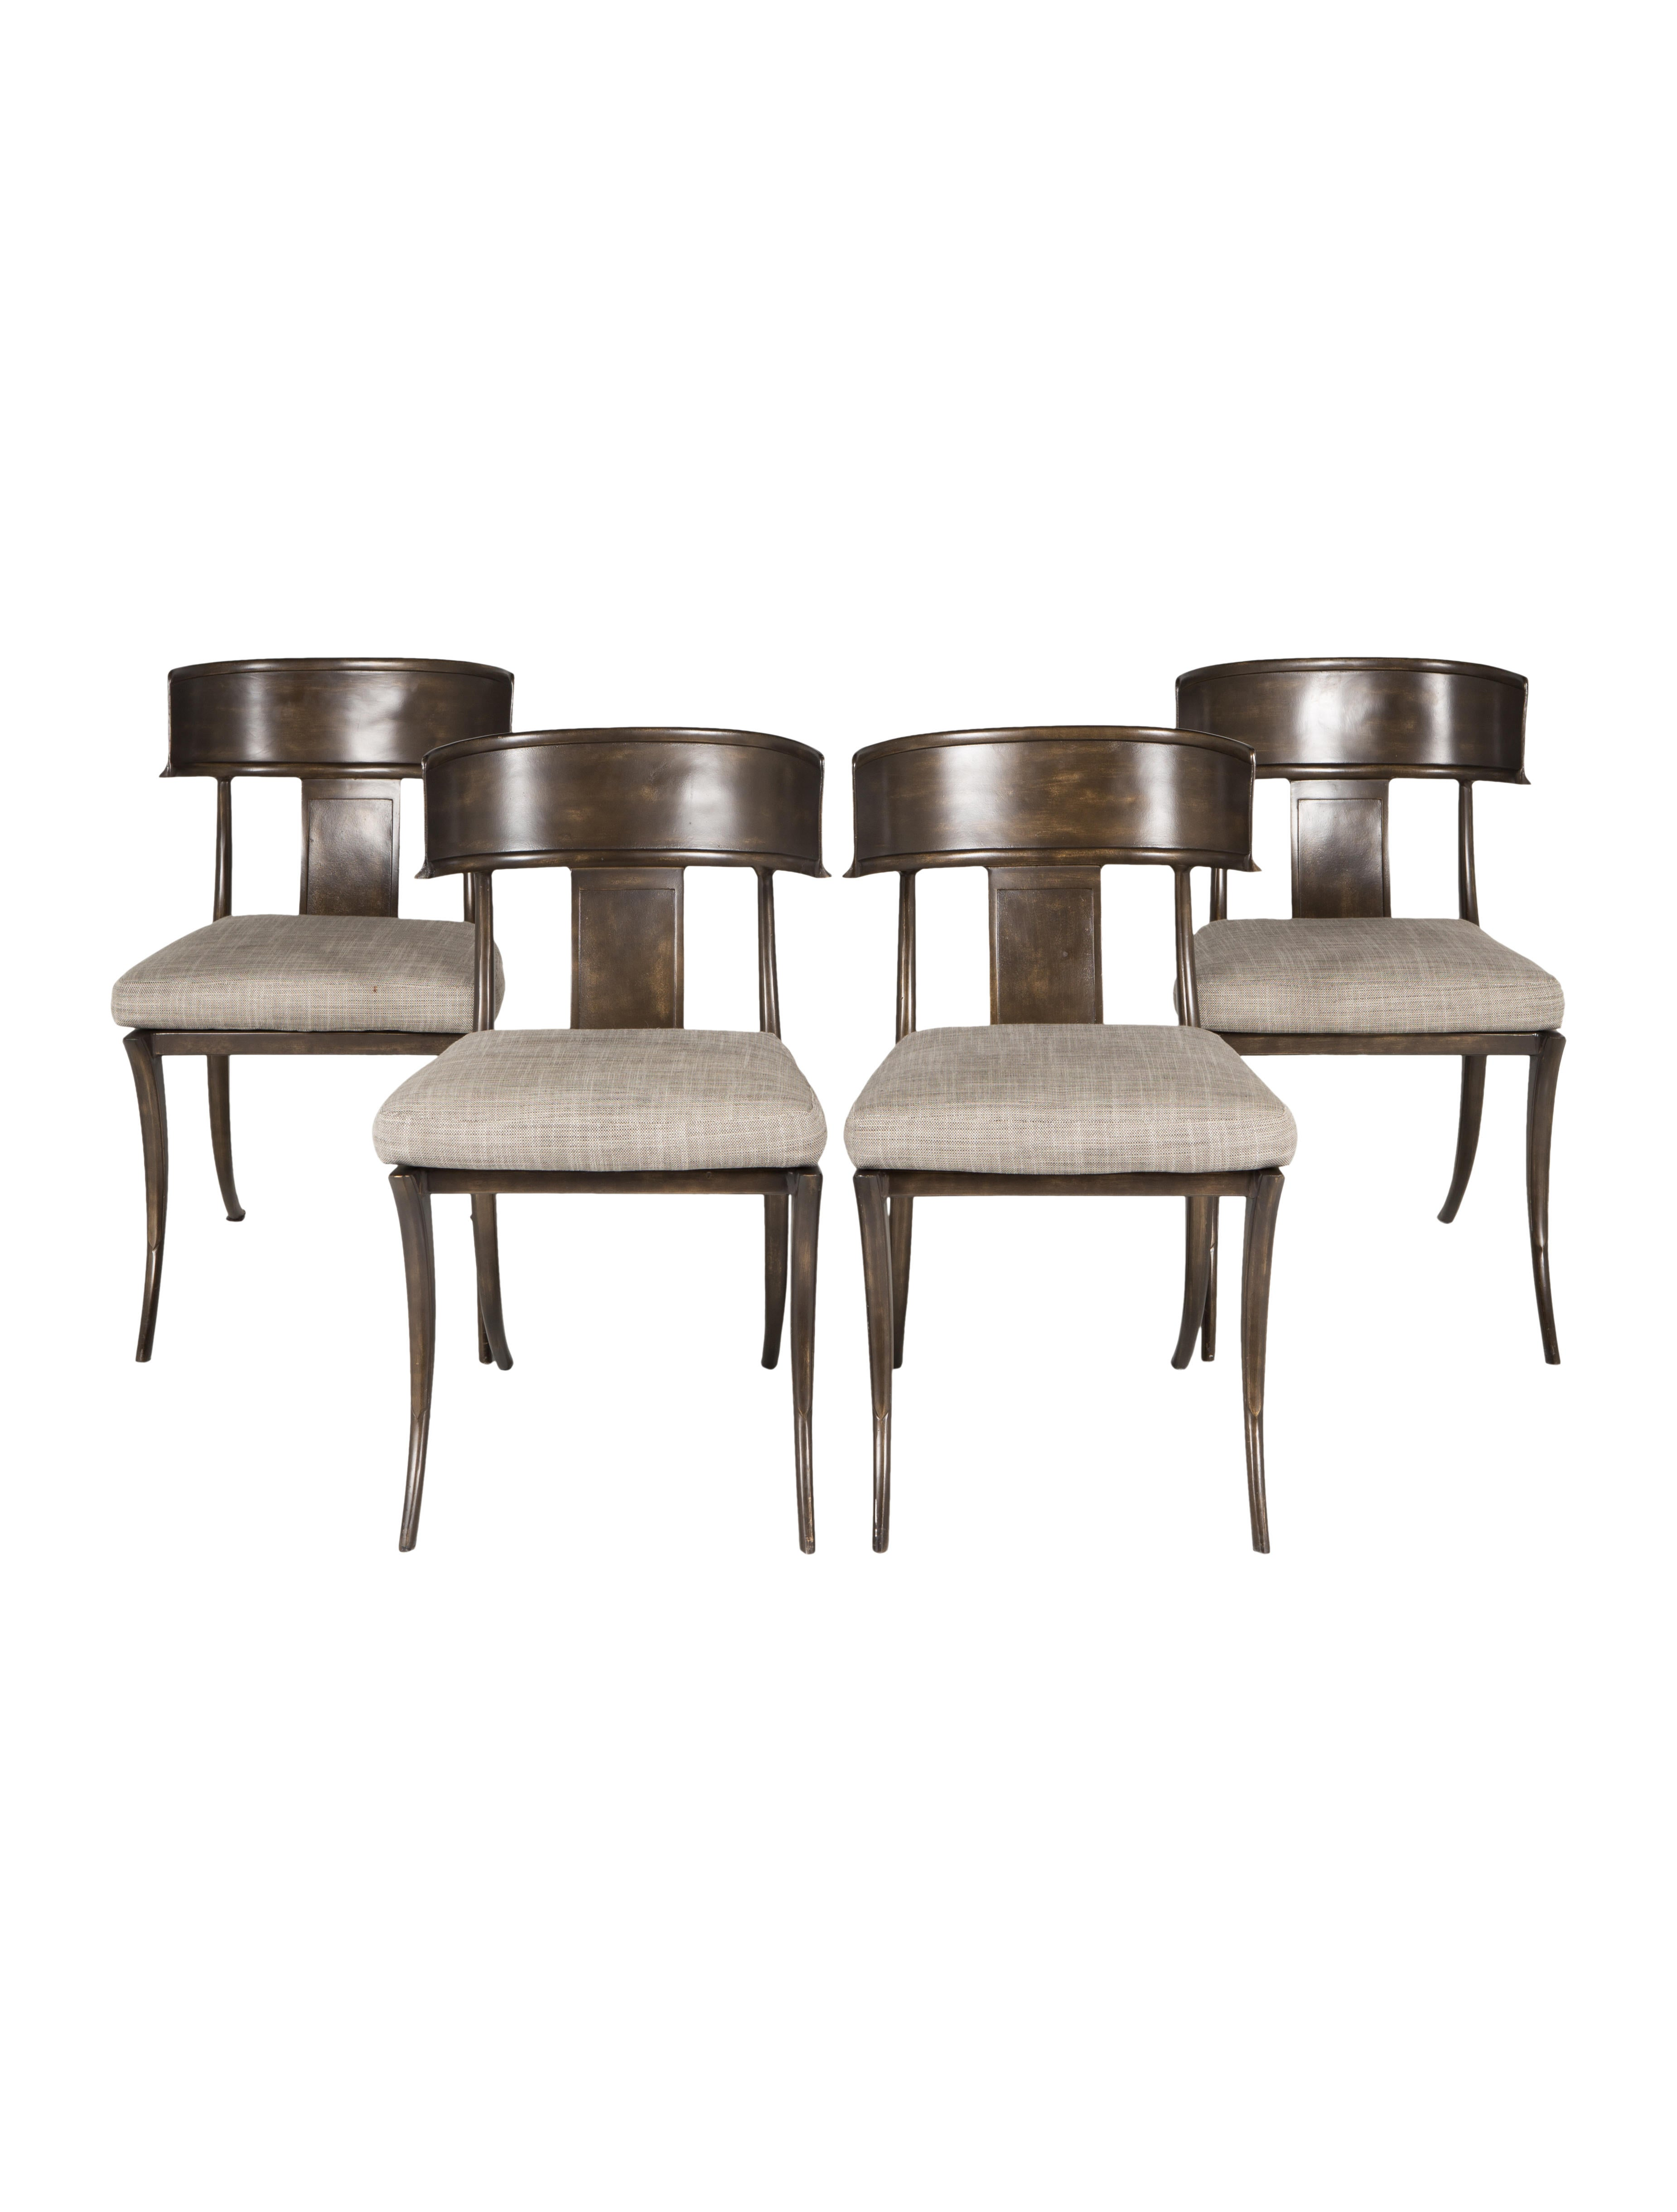 Set Of Four Michael Taylor Klismos Dining Chairs Furniture Chair20145 The Realreal